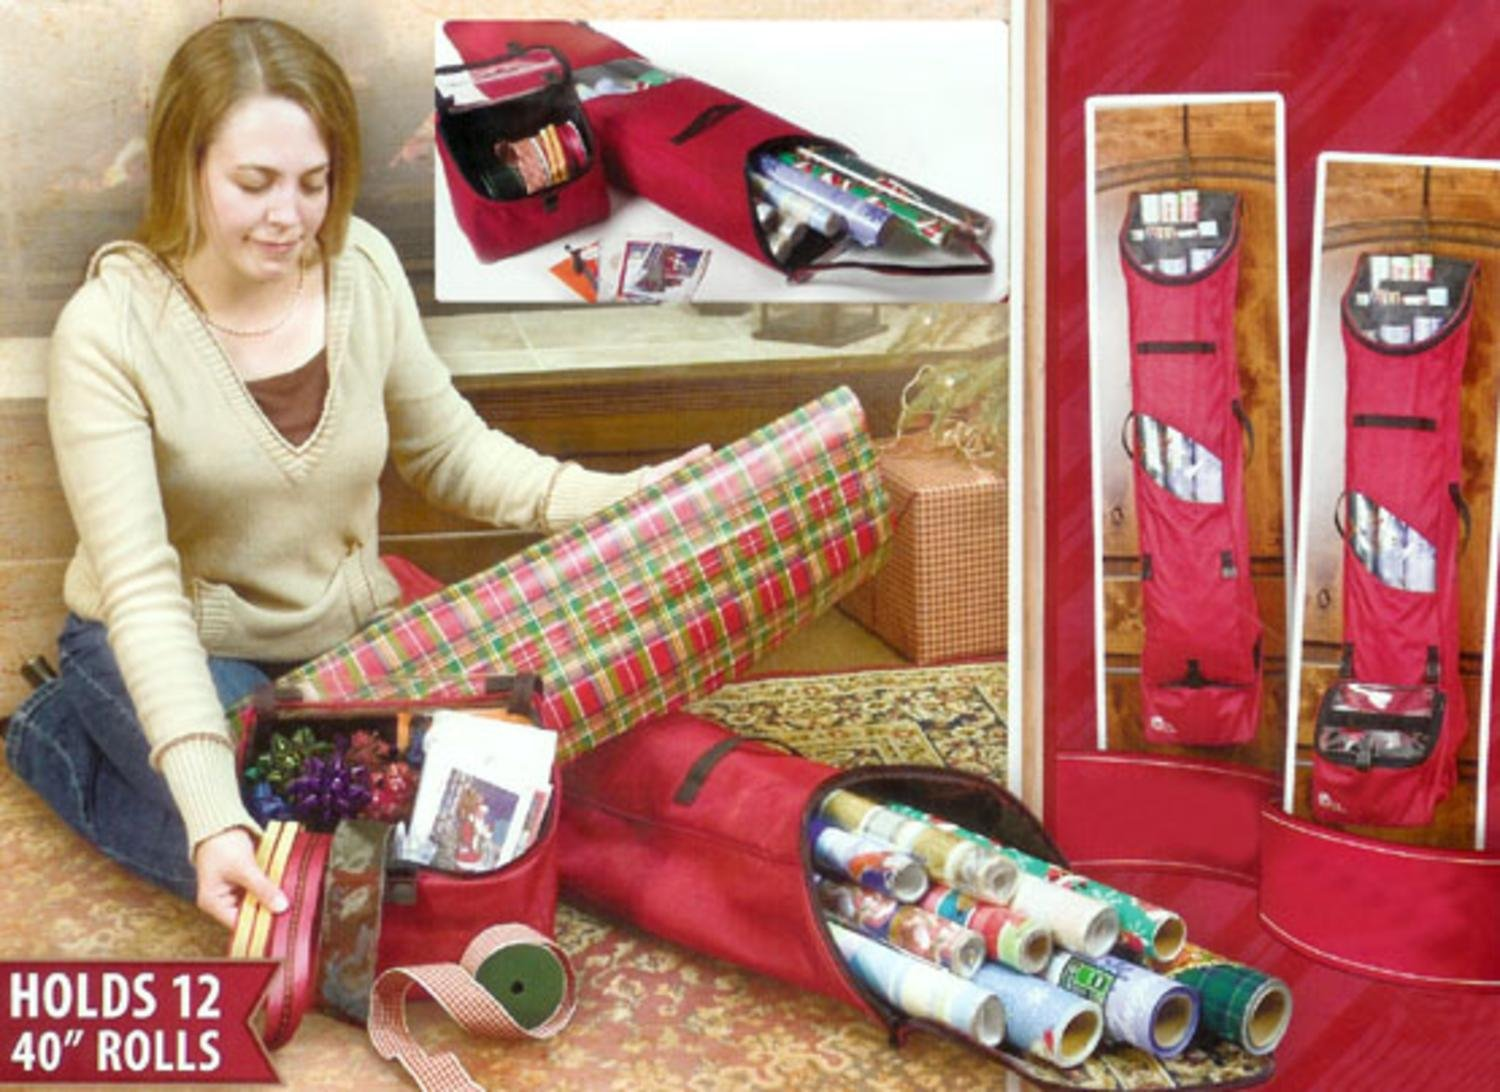 TreeKeeper Christmas Wrapping Paper Storage Bag - Holds 12 Rolls of Wrapping Paper